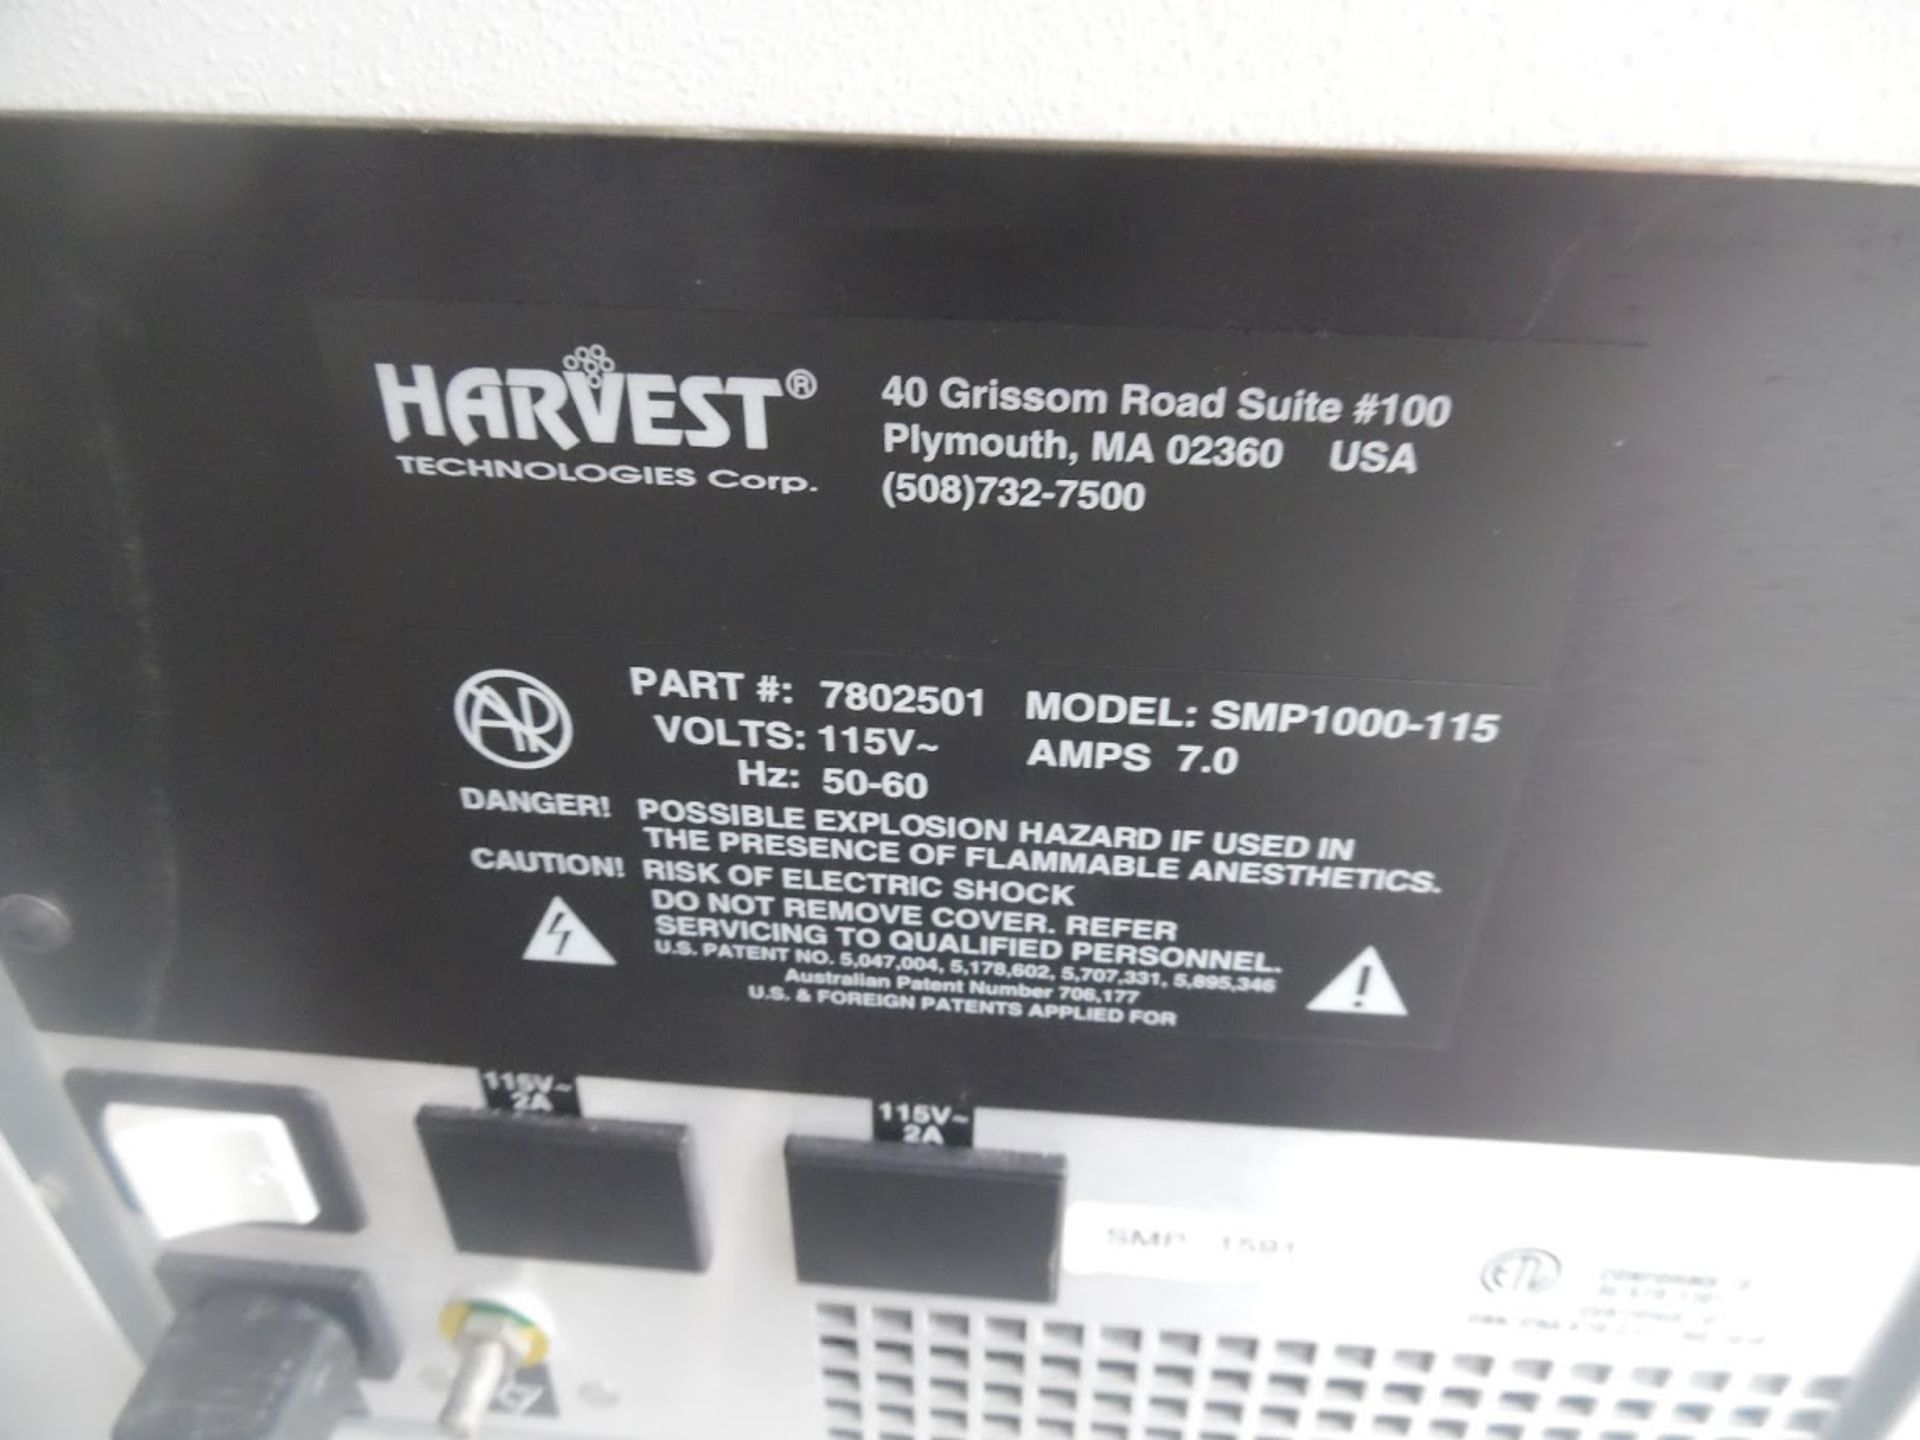 Harvest Smartprep Centrifuge model 7802501 with stand and rotor. - Image 4 of 6